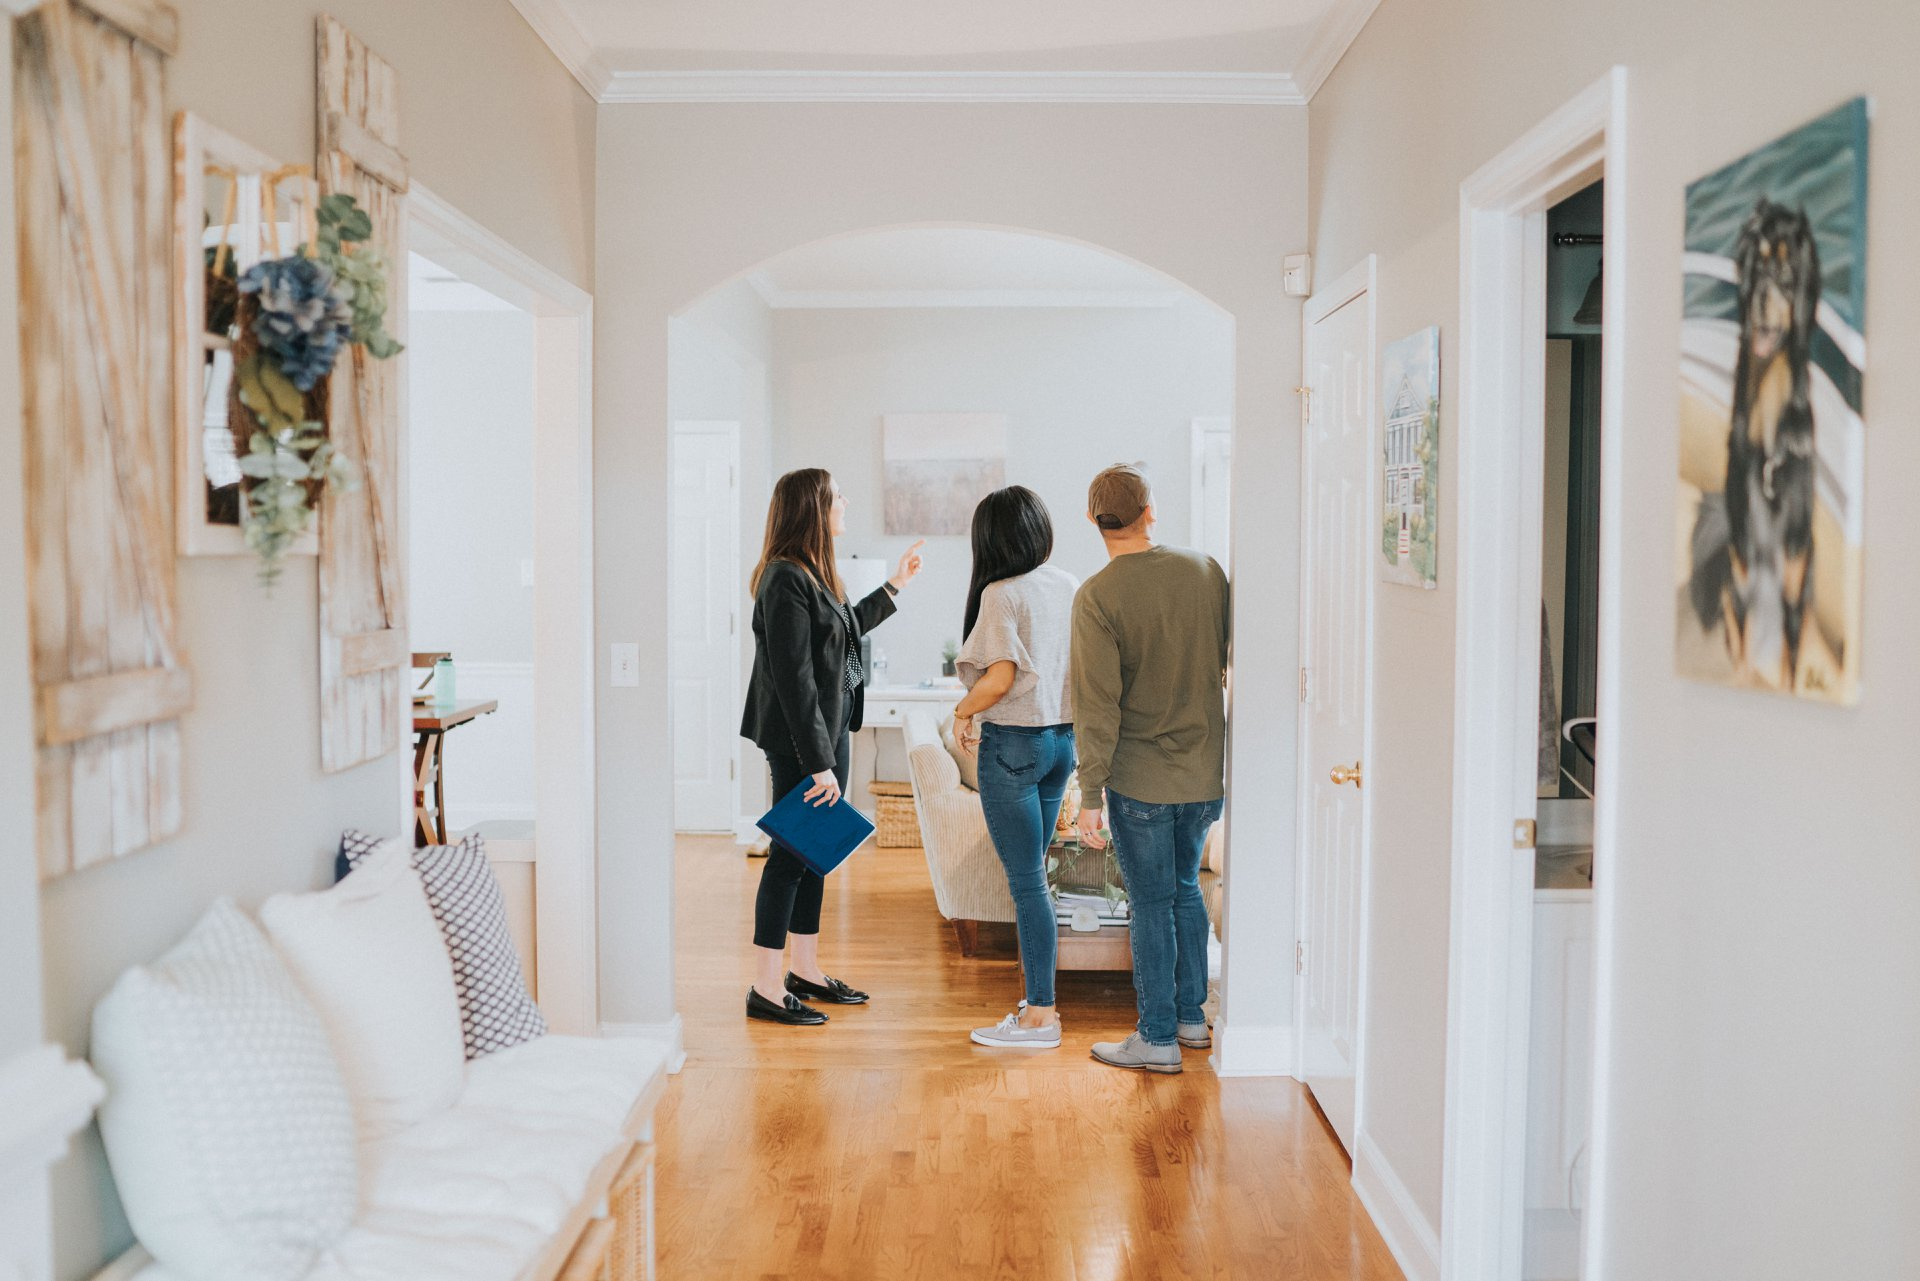 5 Essential Tips for Homebuying